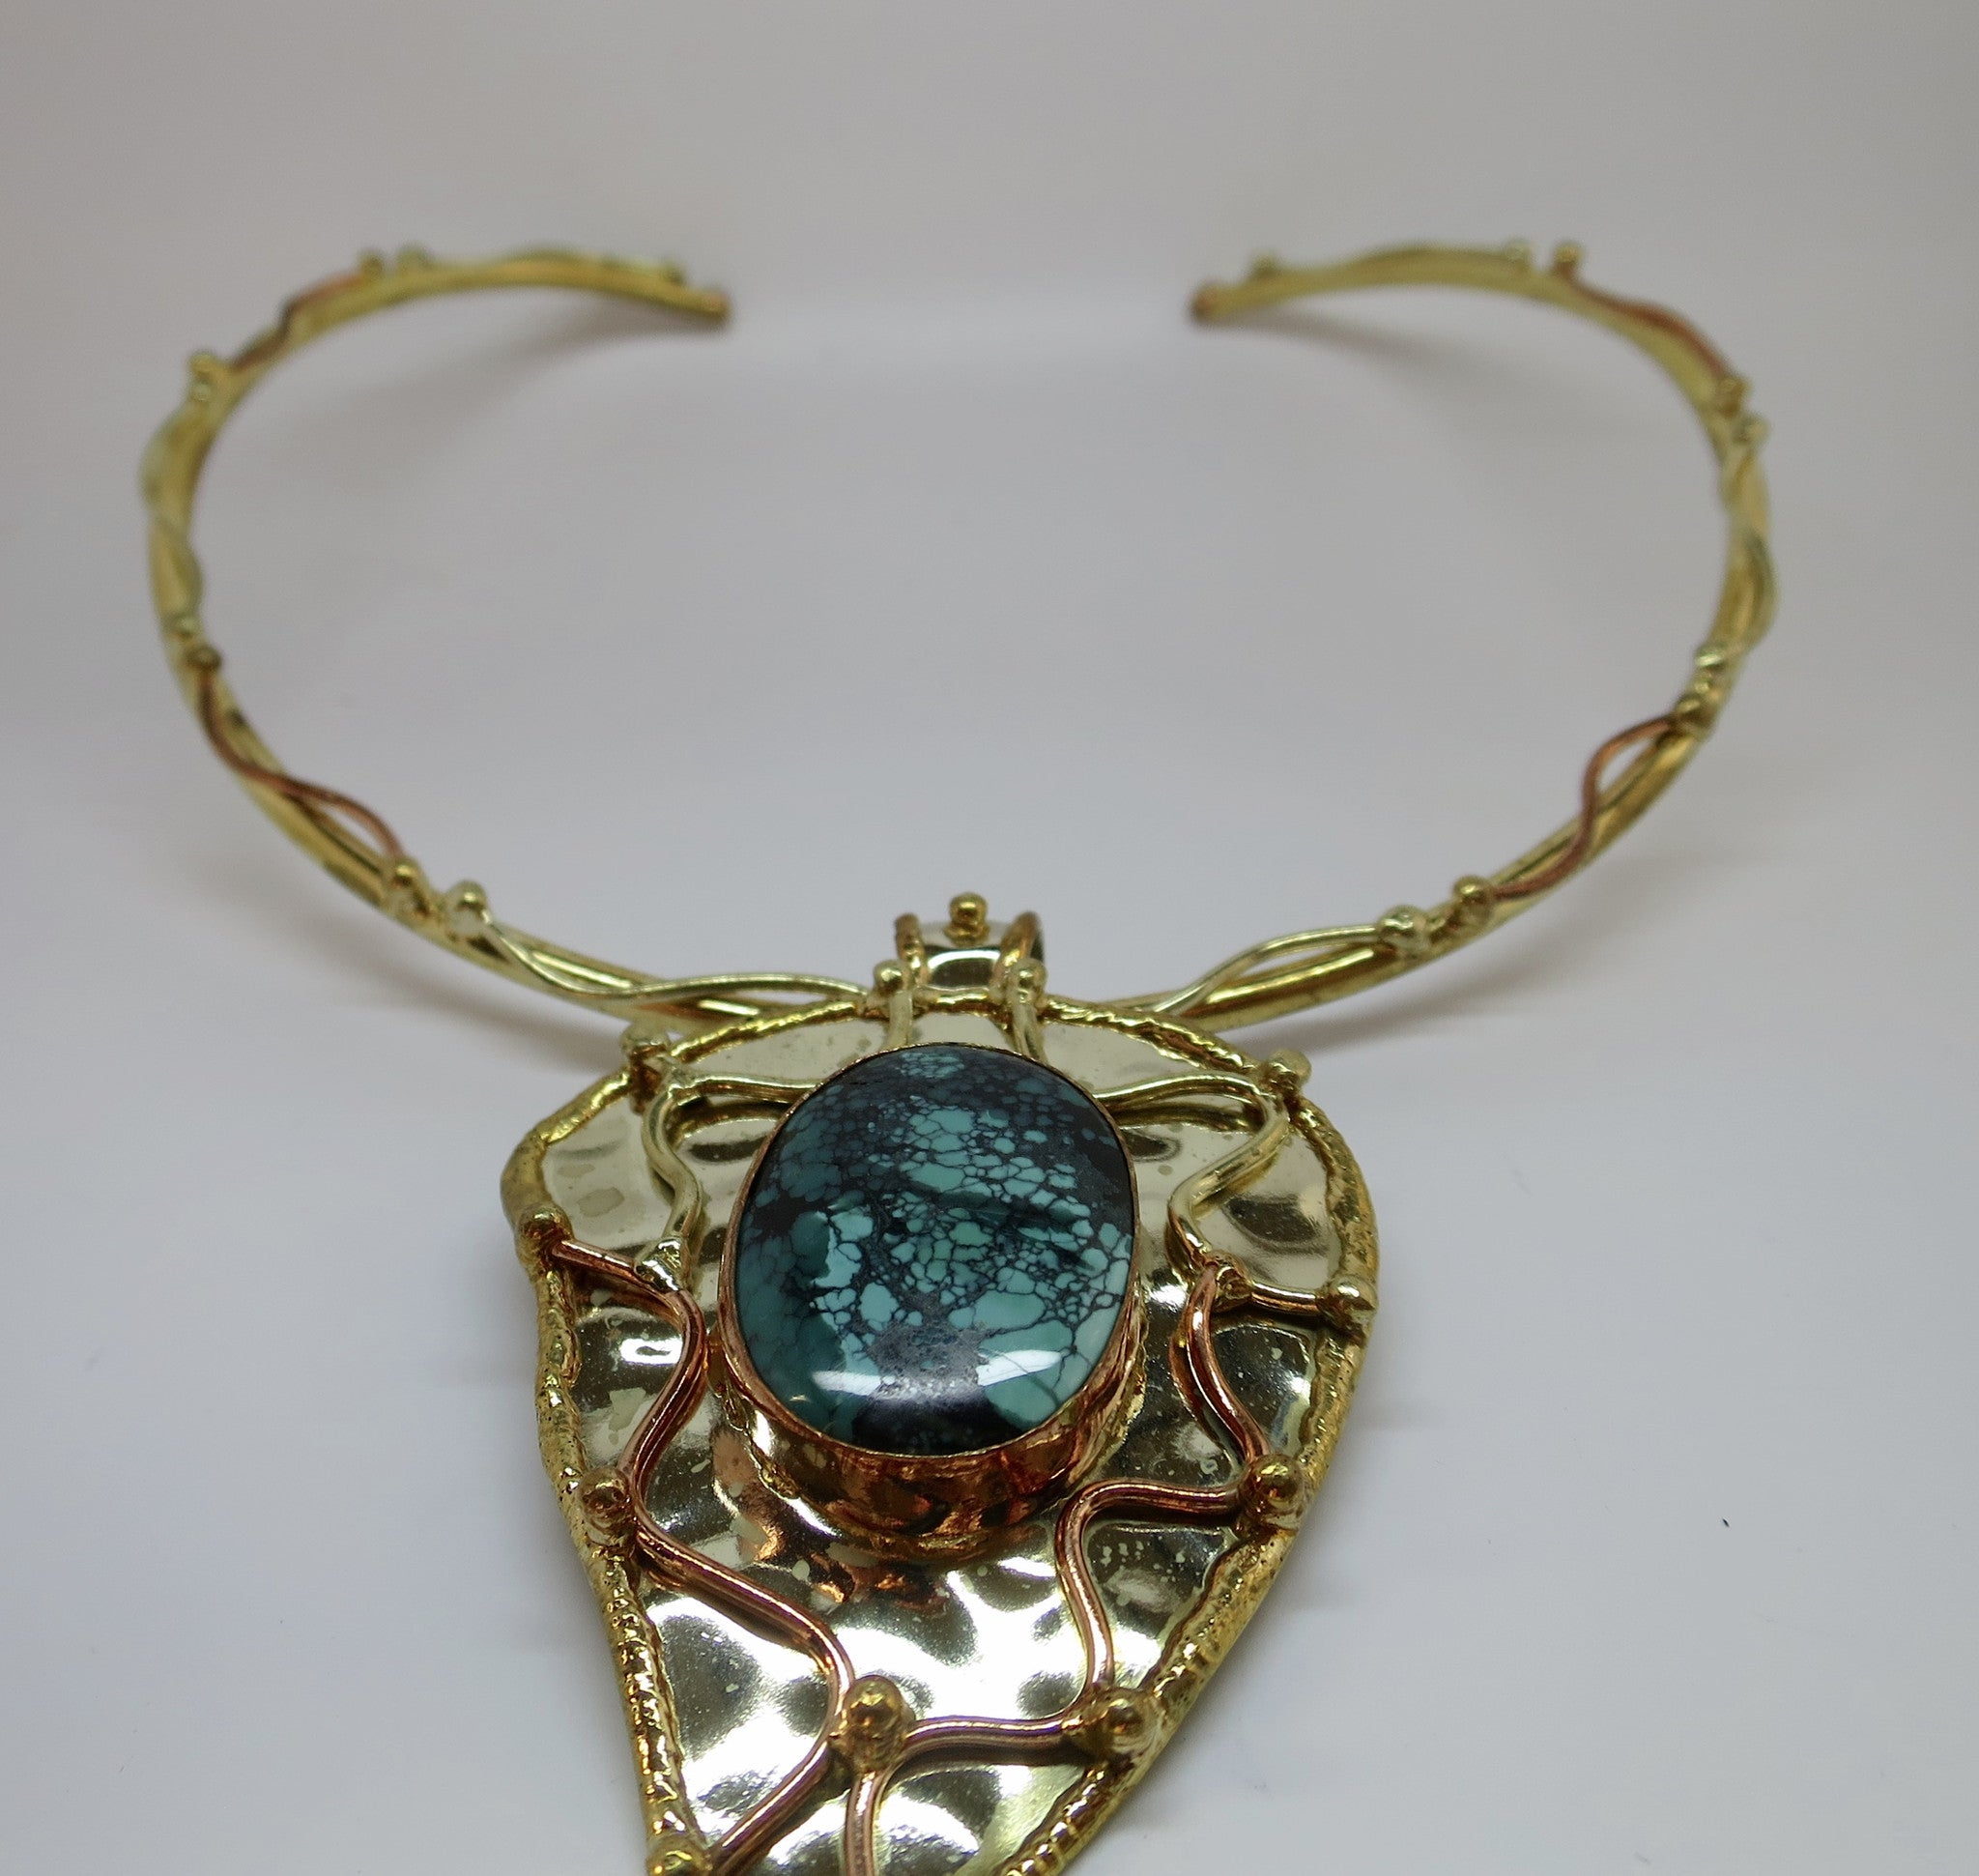 Allura Power Gems-Genuine Turquoise Brass & Copper Leaf Pendant - Pretty Princess Style  - 2